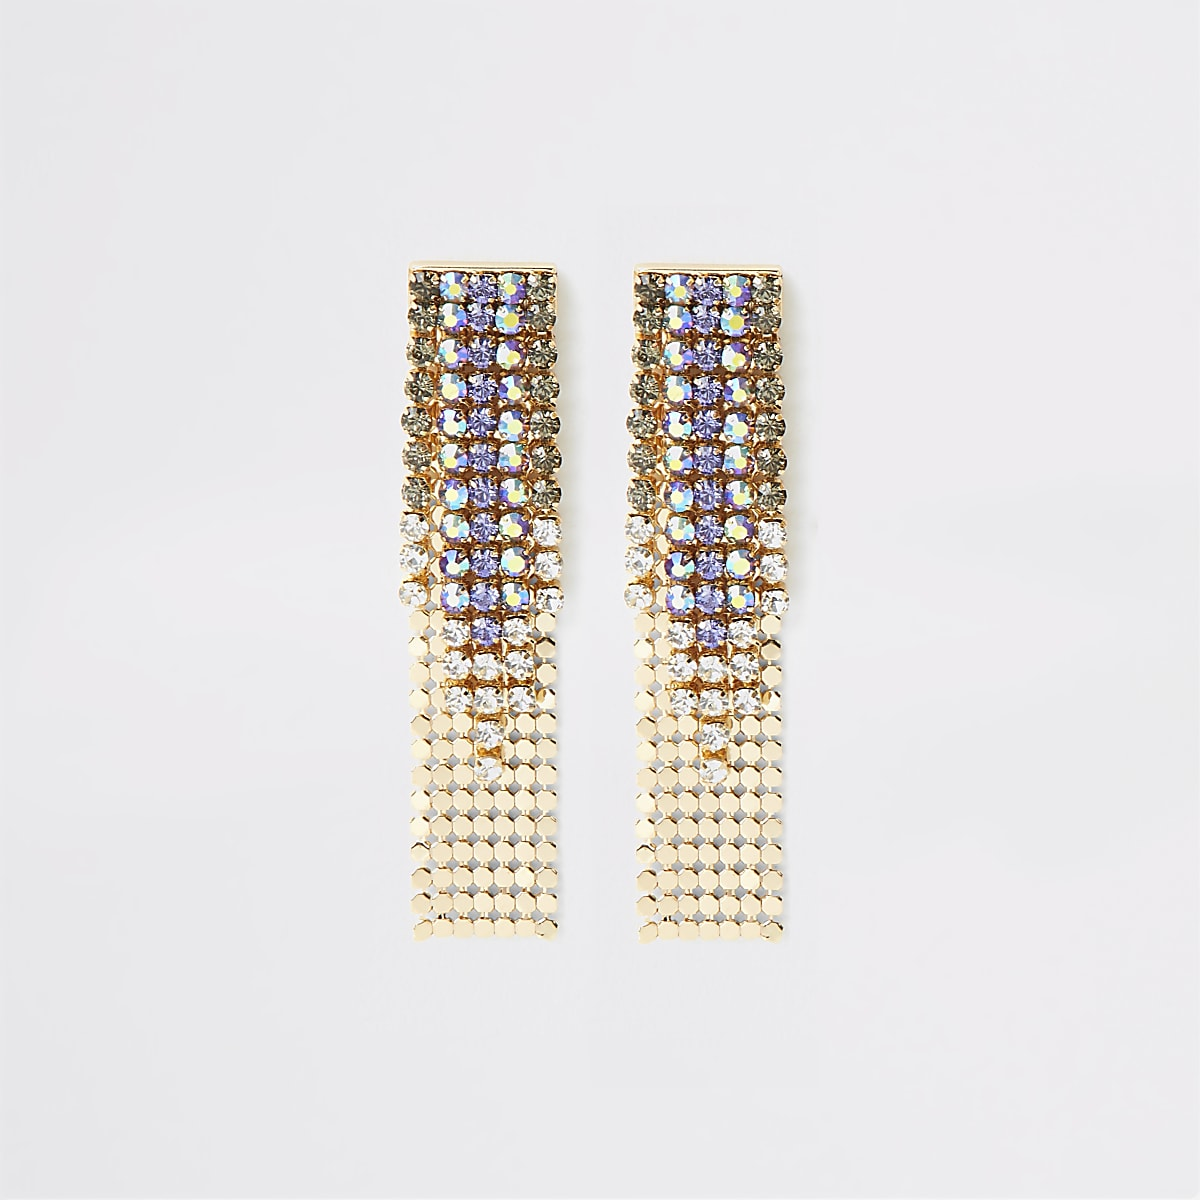 Gold color ombre cupchain earrings